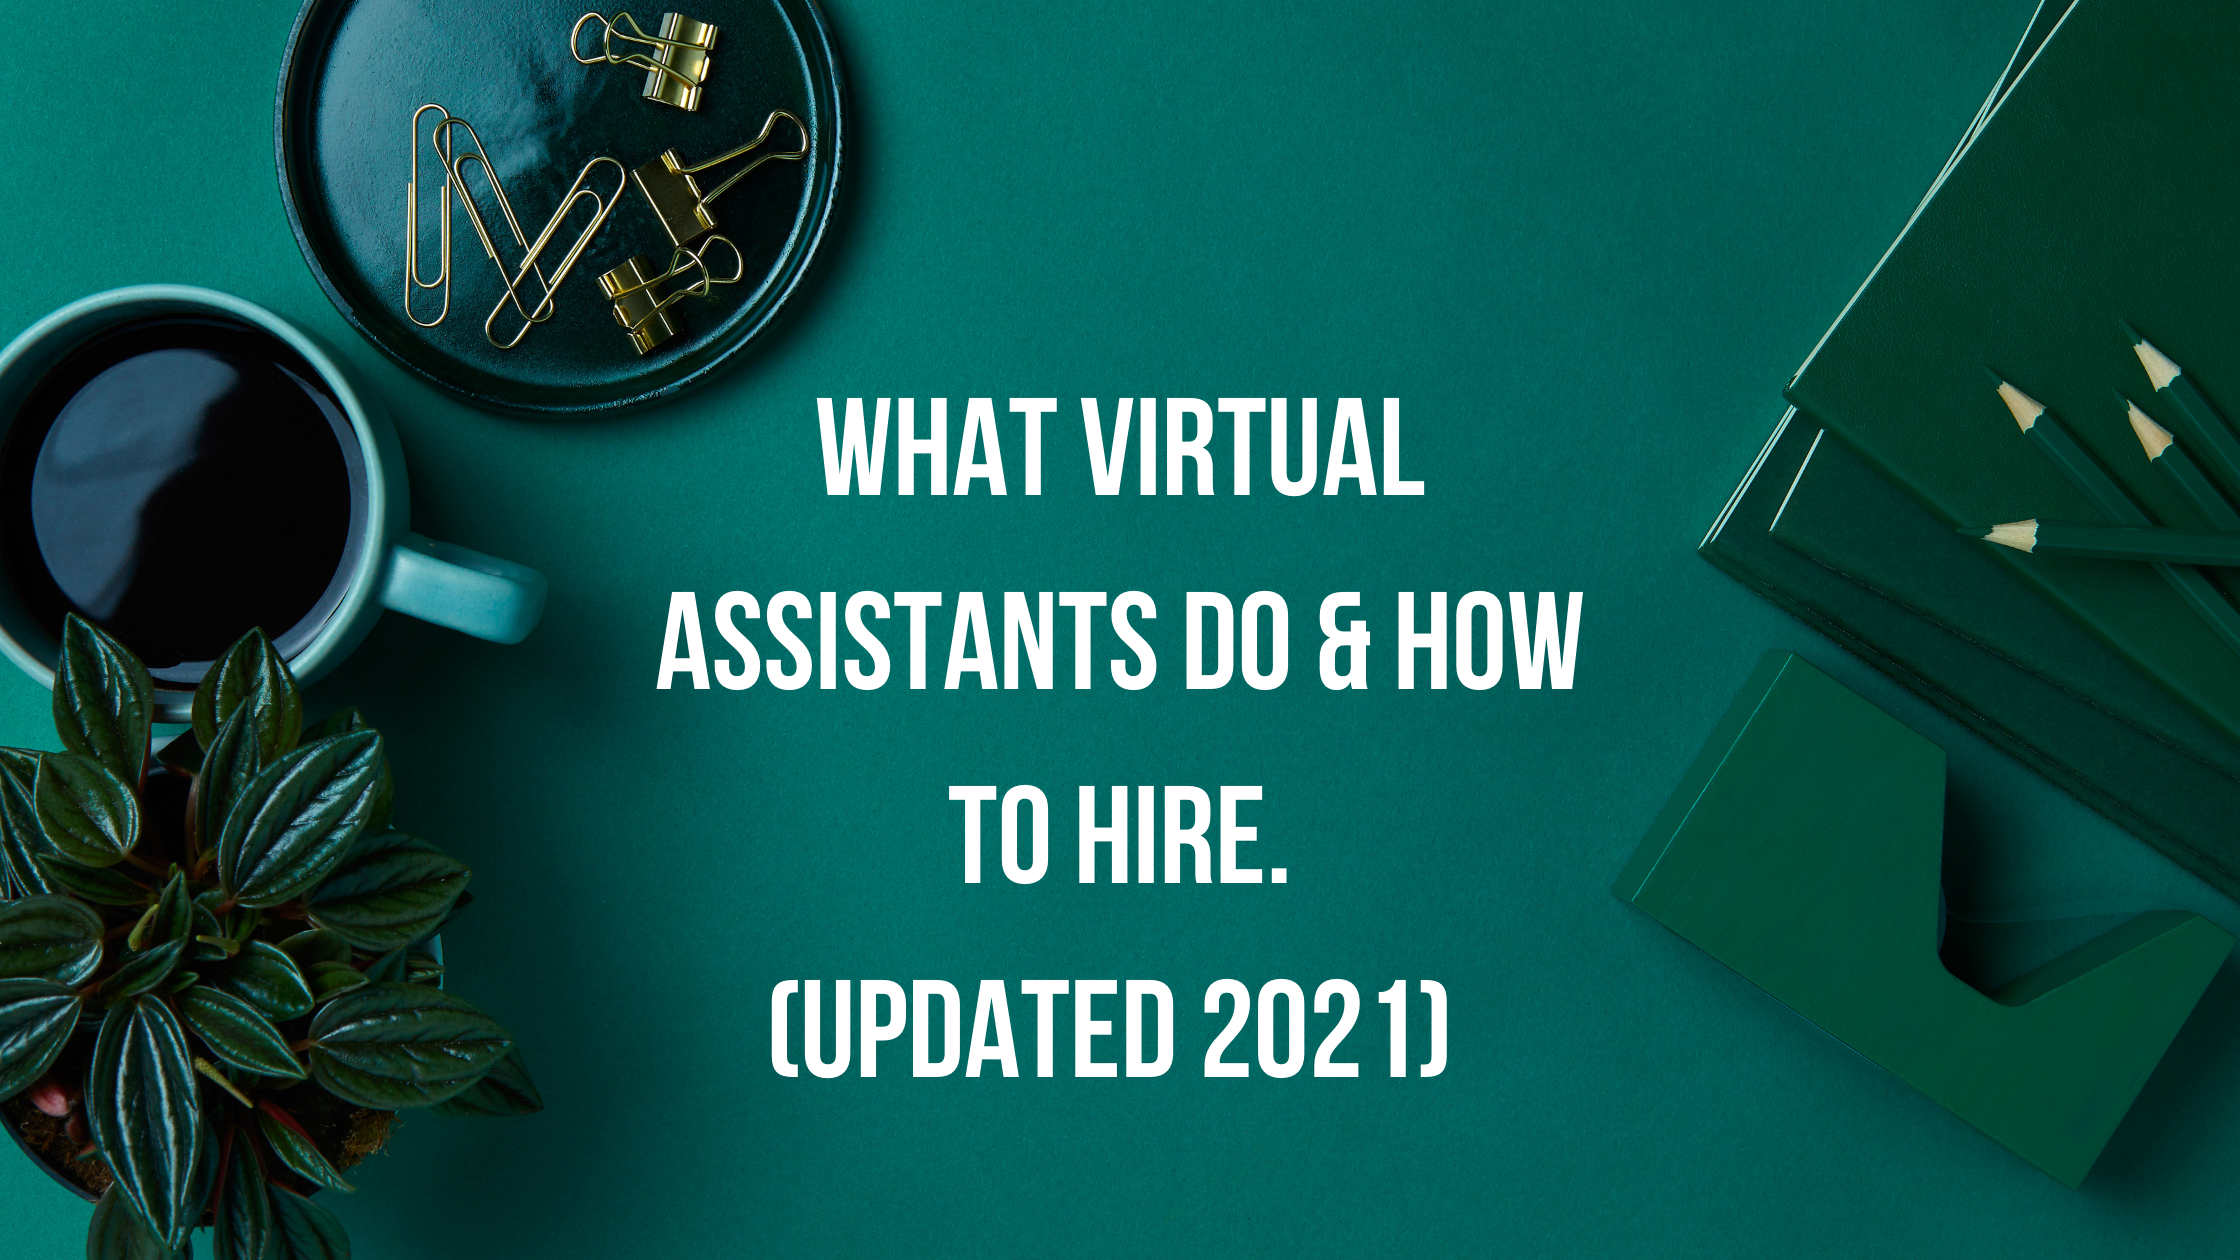 What Virtual Assistants Do & How to Hire in 2021